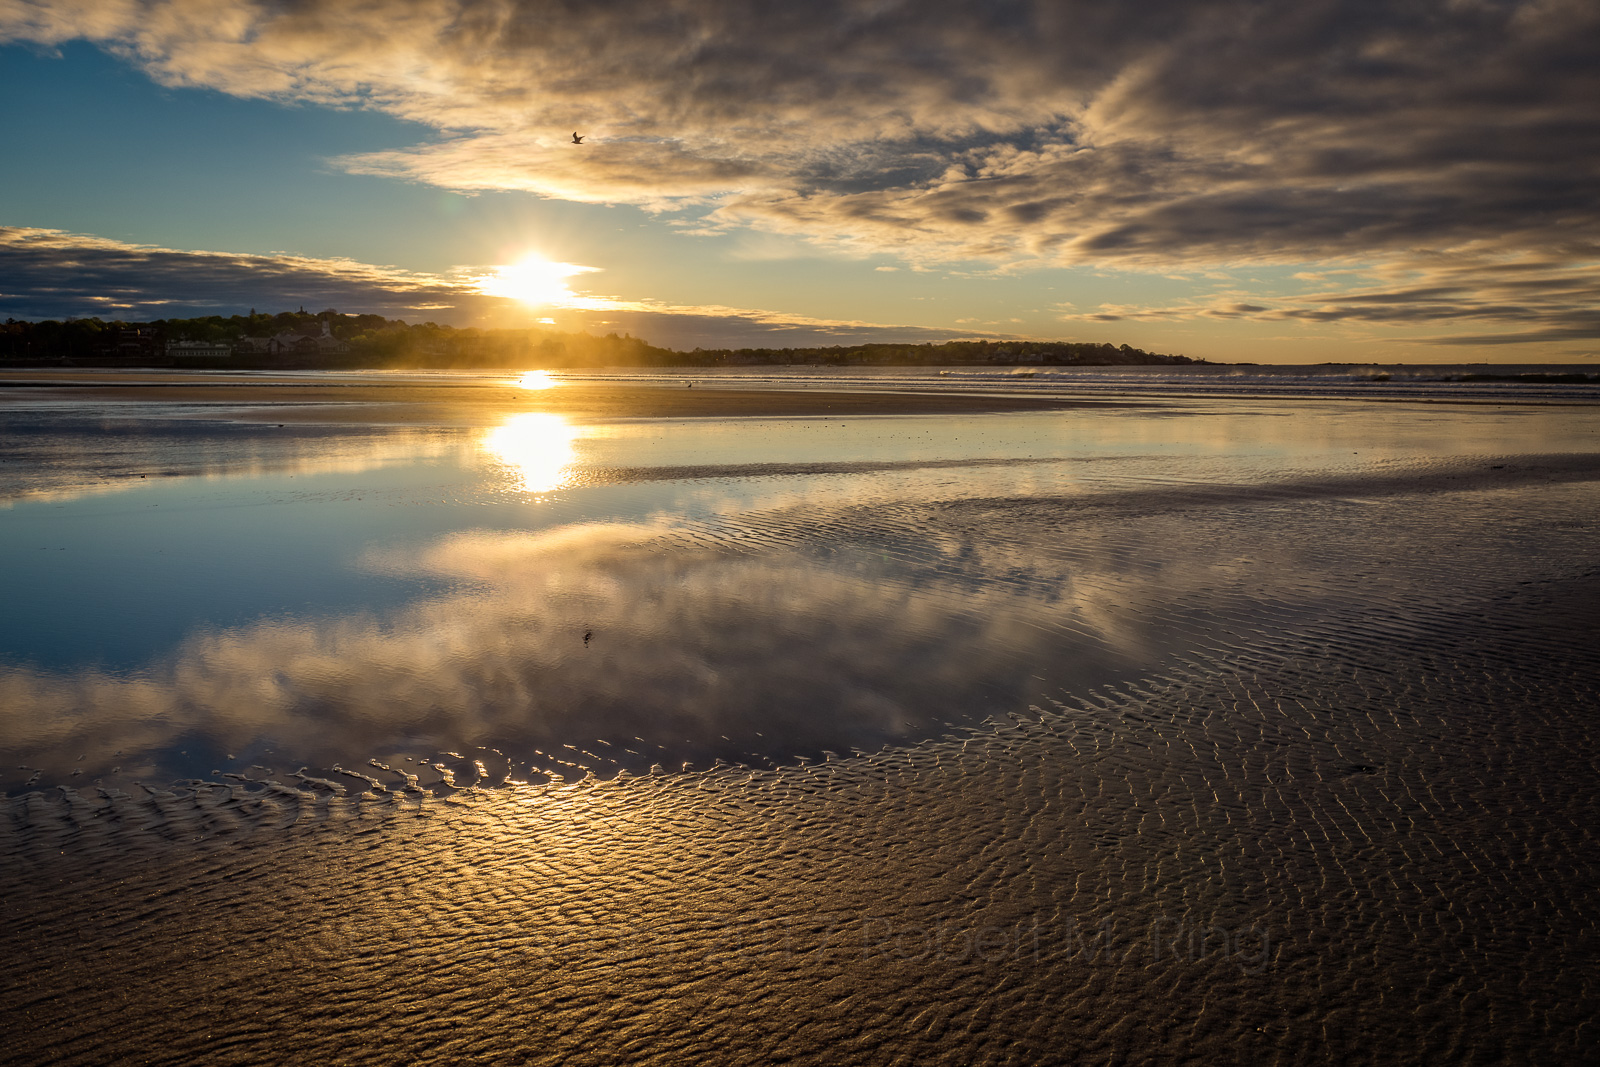 Kings Beach, Lynn, Lynn Shore Drive, MA, Massachusetts, sunrise, coast, clouds, new england